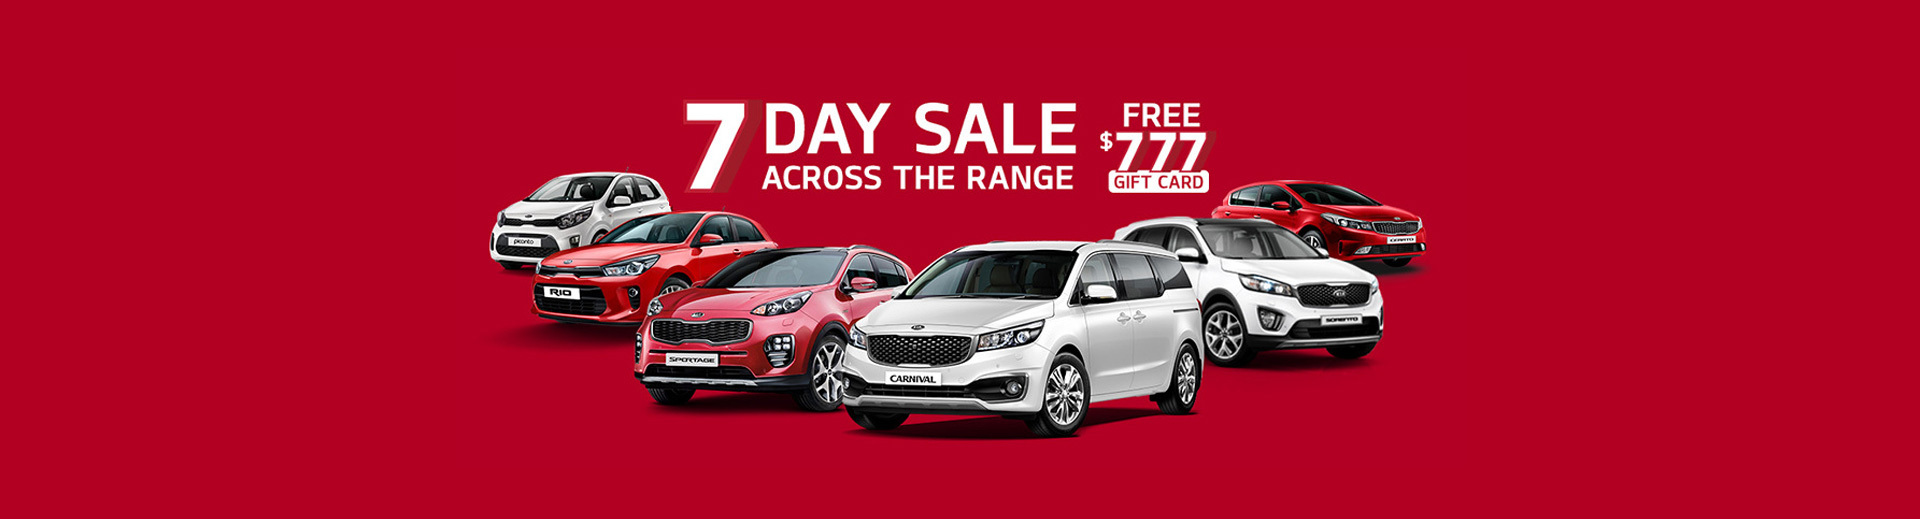 Kia's 7 Day Sale